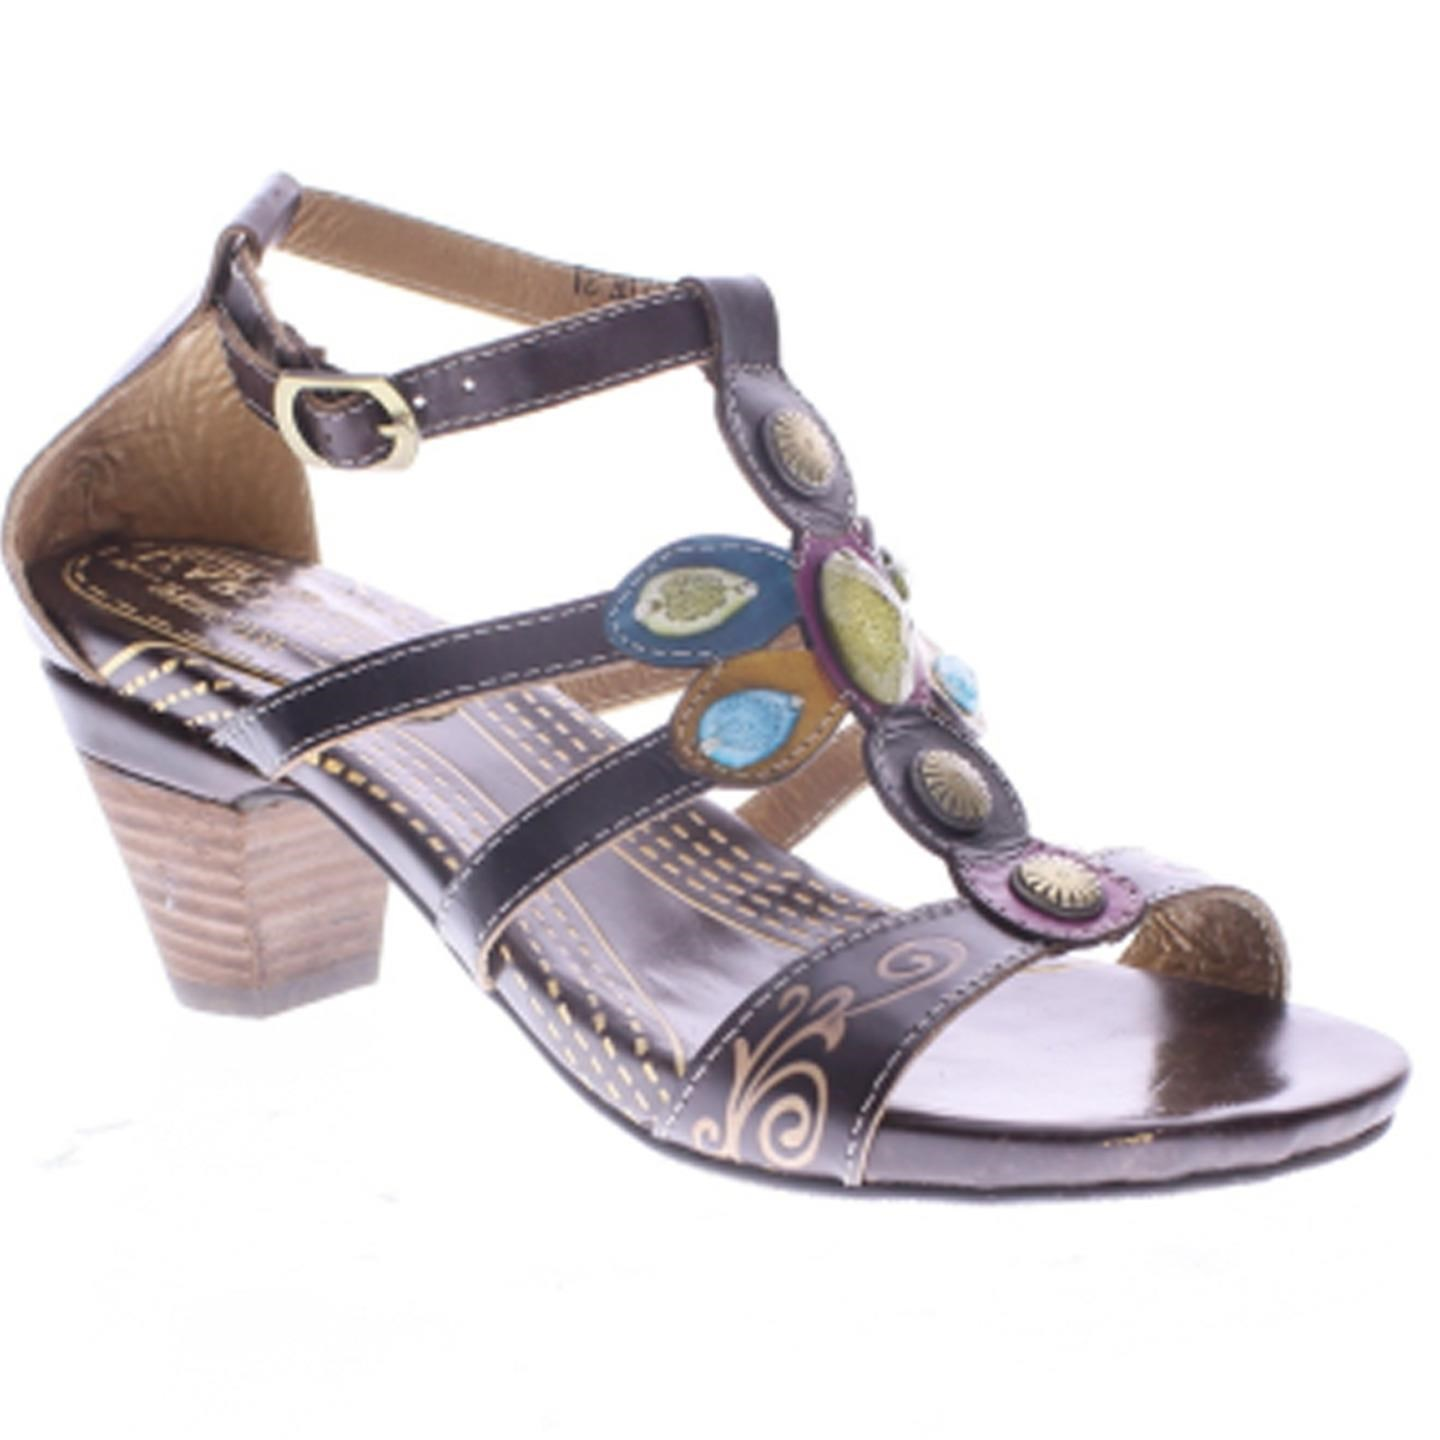 L'Artiste Frenzie By Spring Step EU Brown Leather Sandal 39 EU Step / 8.5 US Women 707eec